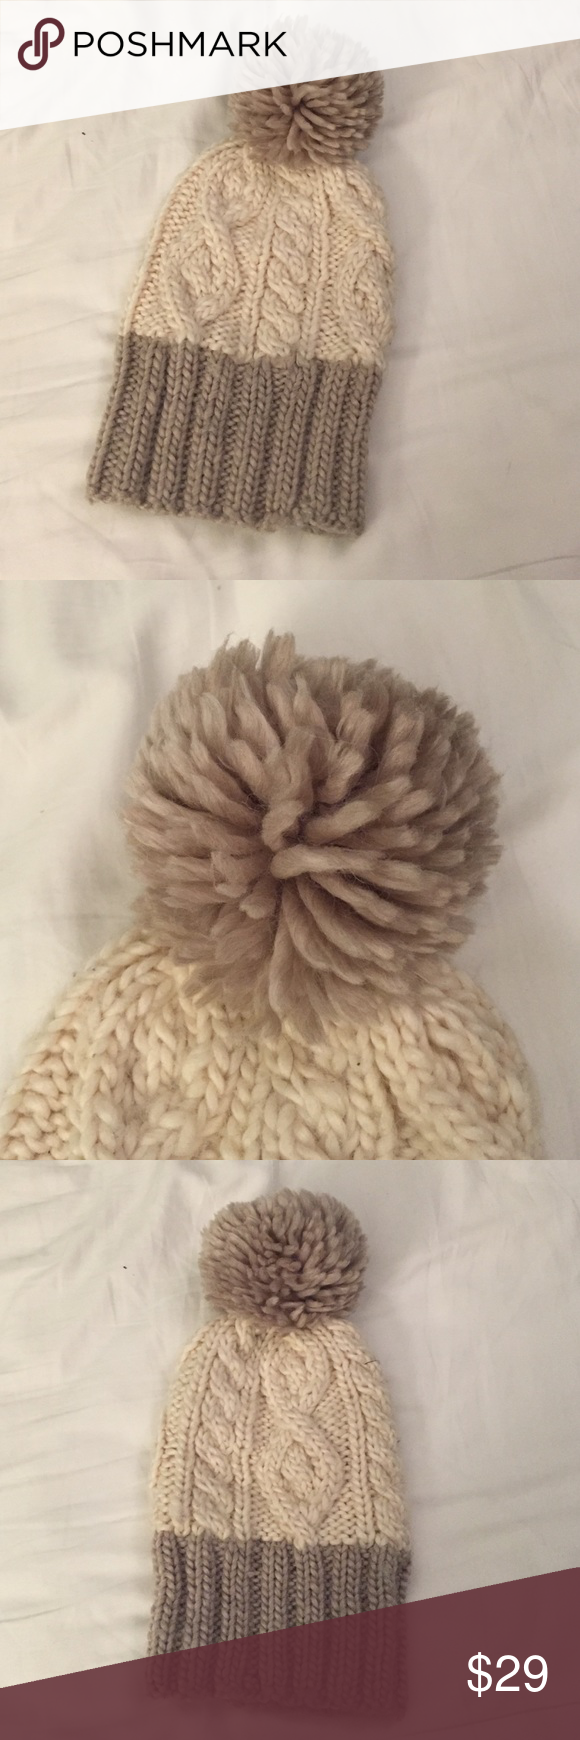 ❣🎉 NWOT Nordstrom Beanie New without tag. Flawless condition. Great for winter time ☃🌦☂🌪🌤 Nordstrom Accessories Hats